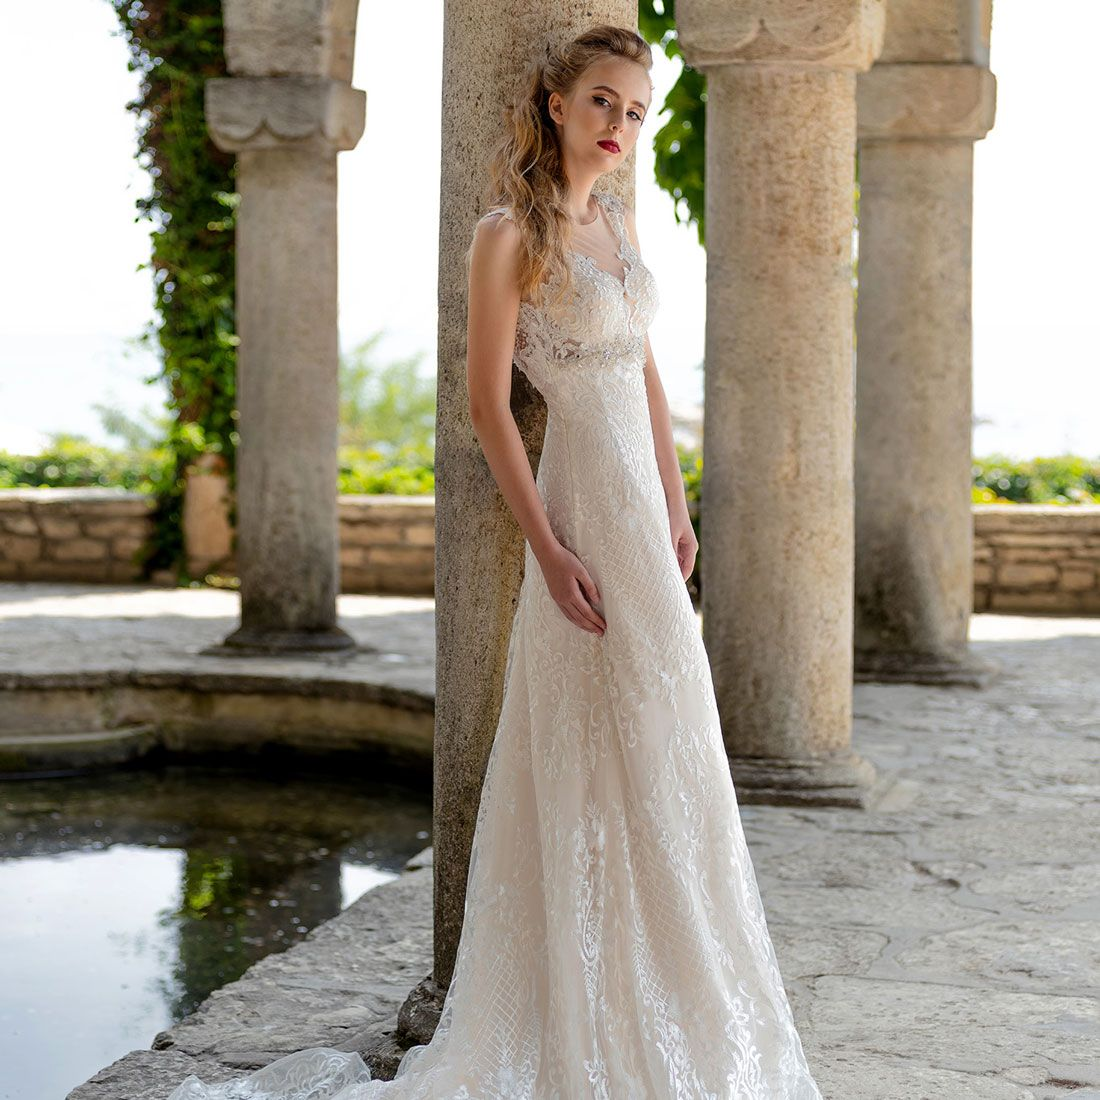 Designer wedding dresses bridal manufacturer hadassa for Designer wedding dresses uk